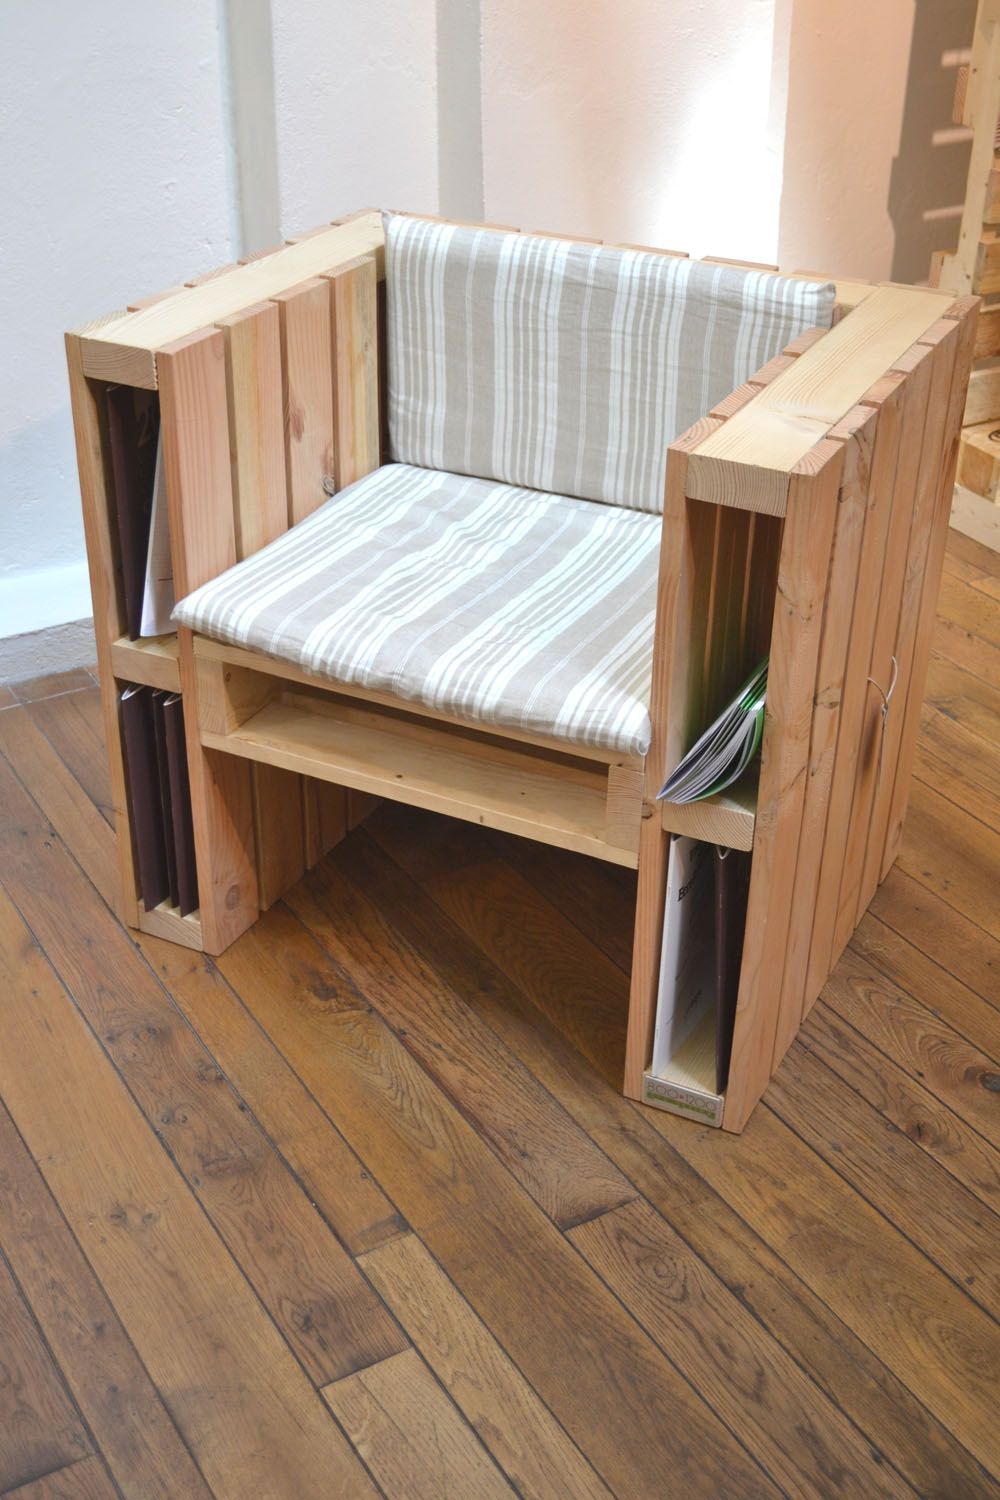 Royal Mobilya Bochum Diy Top 10 Recycled Pallet Ideas And Projects Pallet Stuff